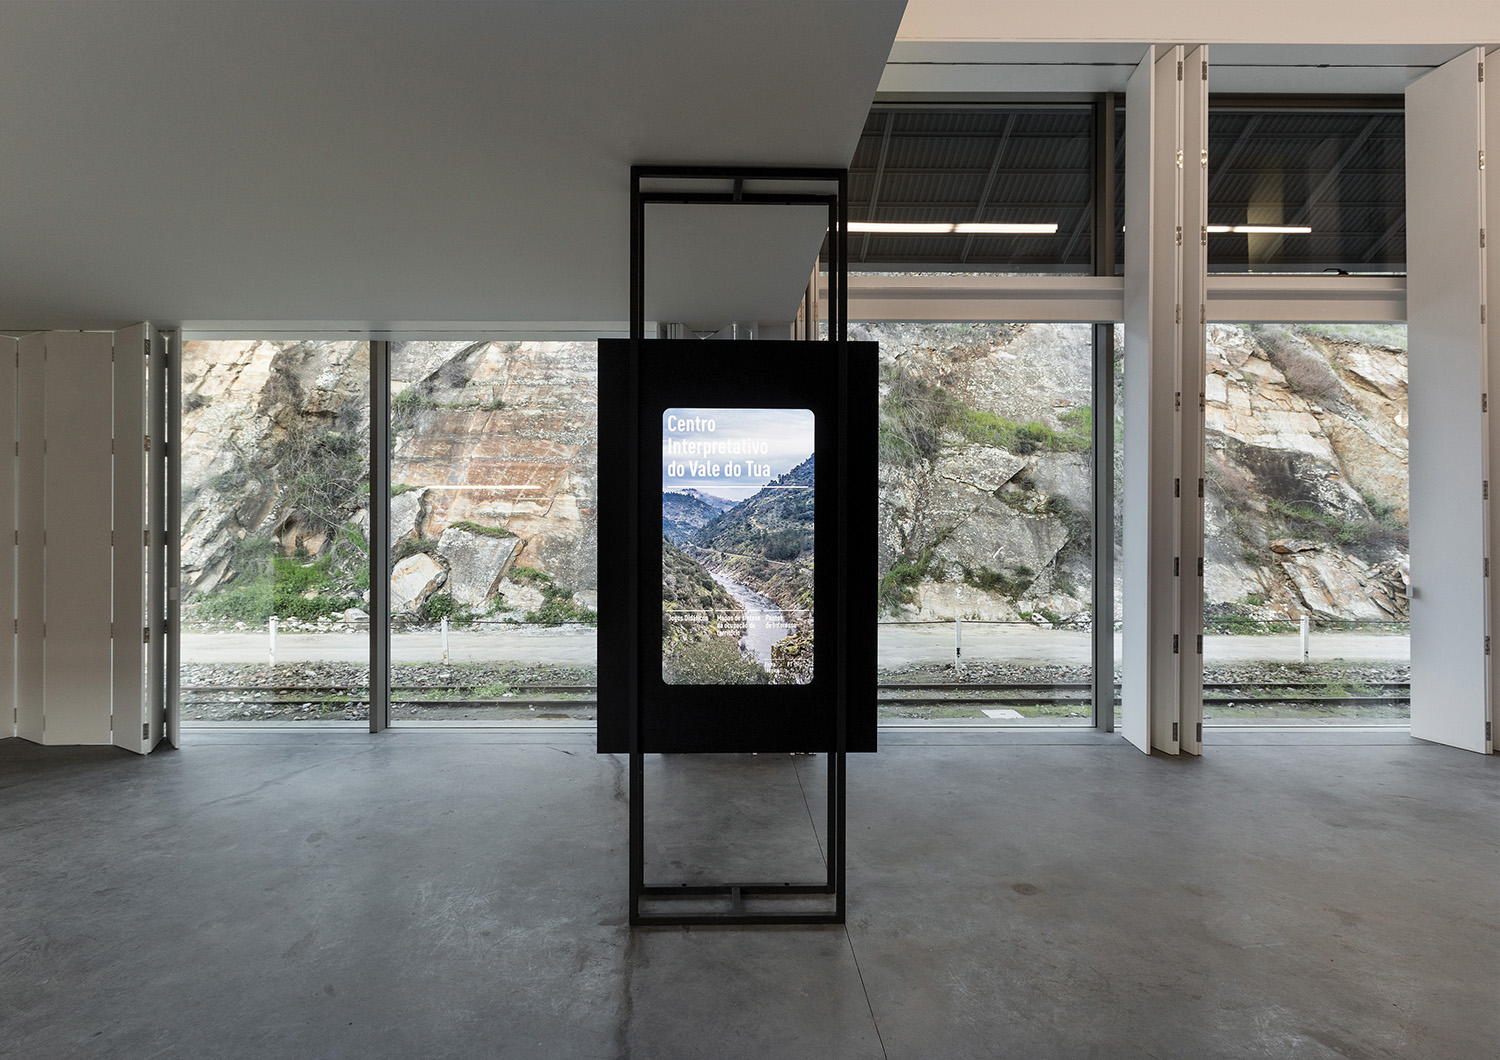 entrance hall with interactive totem overlooking the escarpment Luís Ferreira Alves